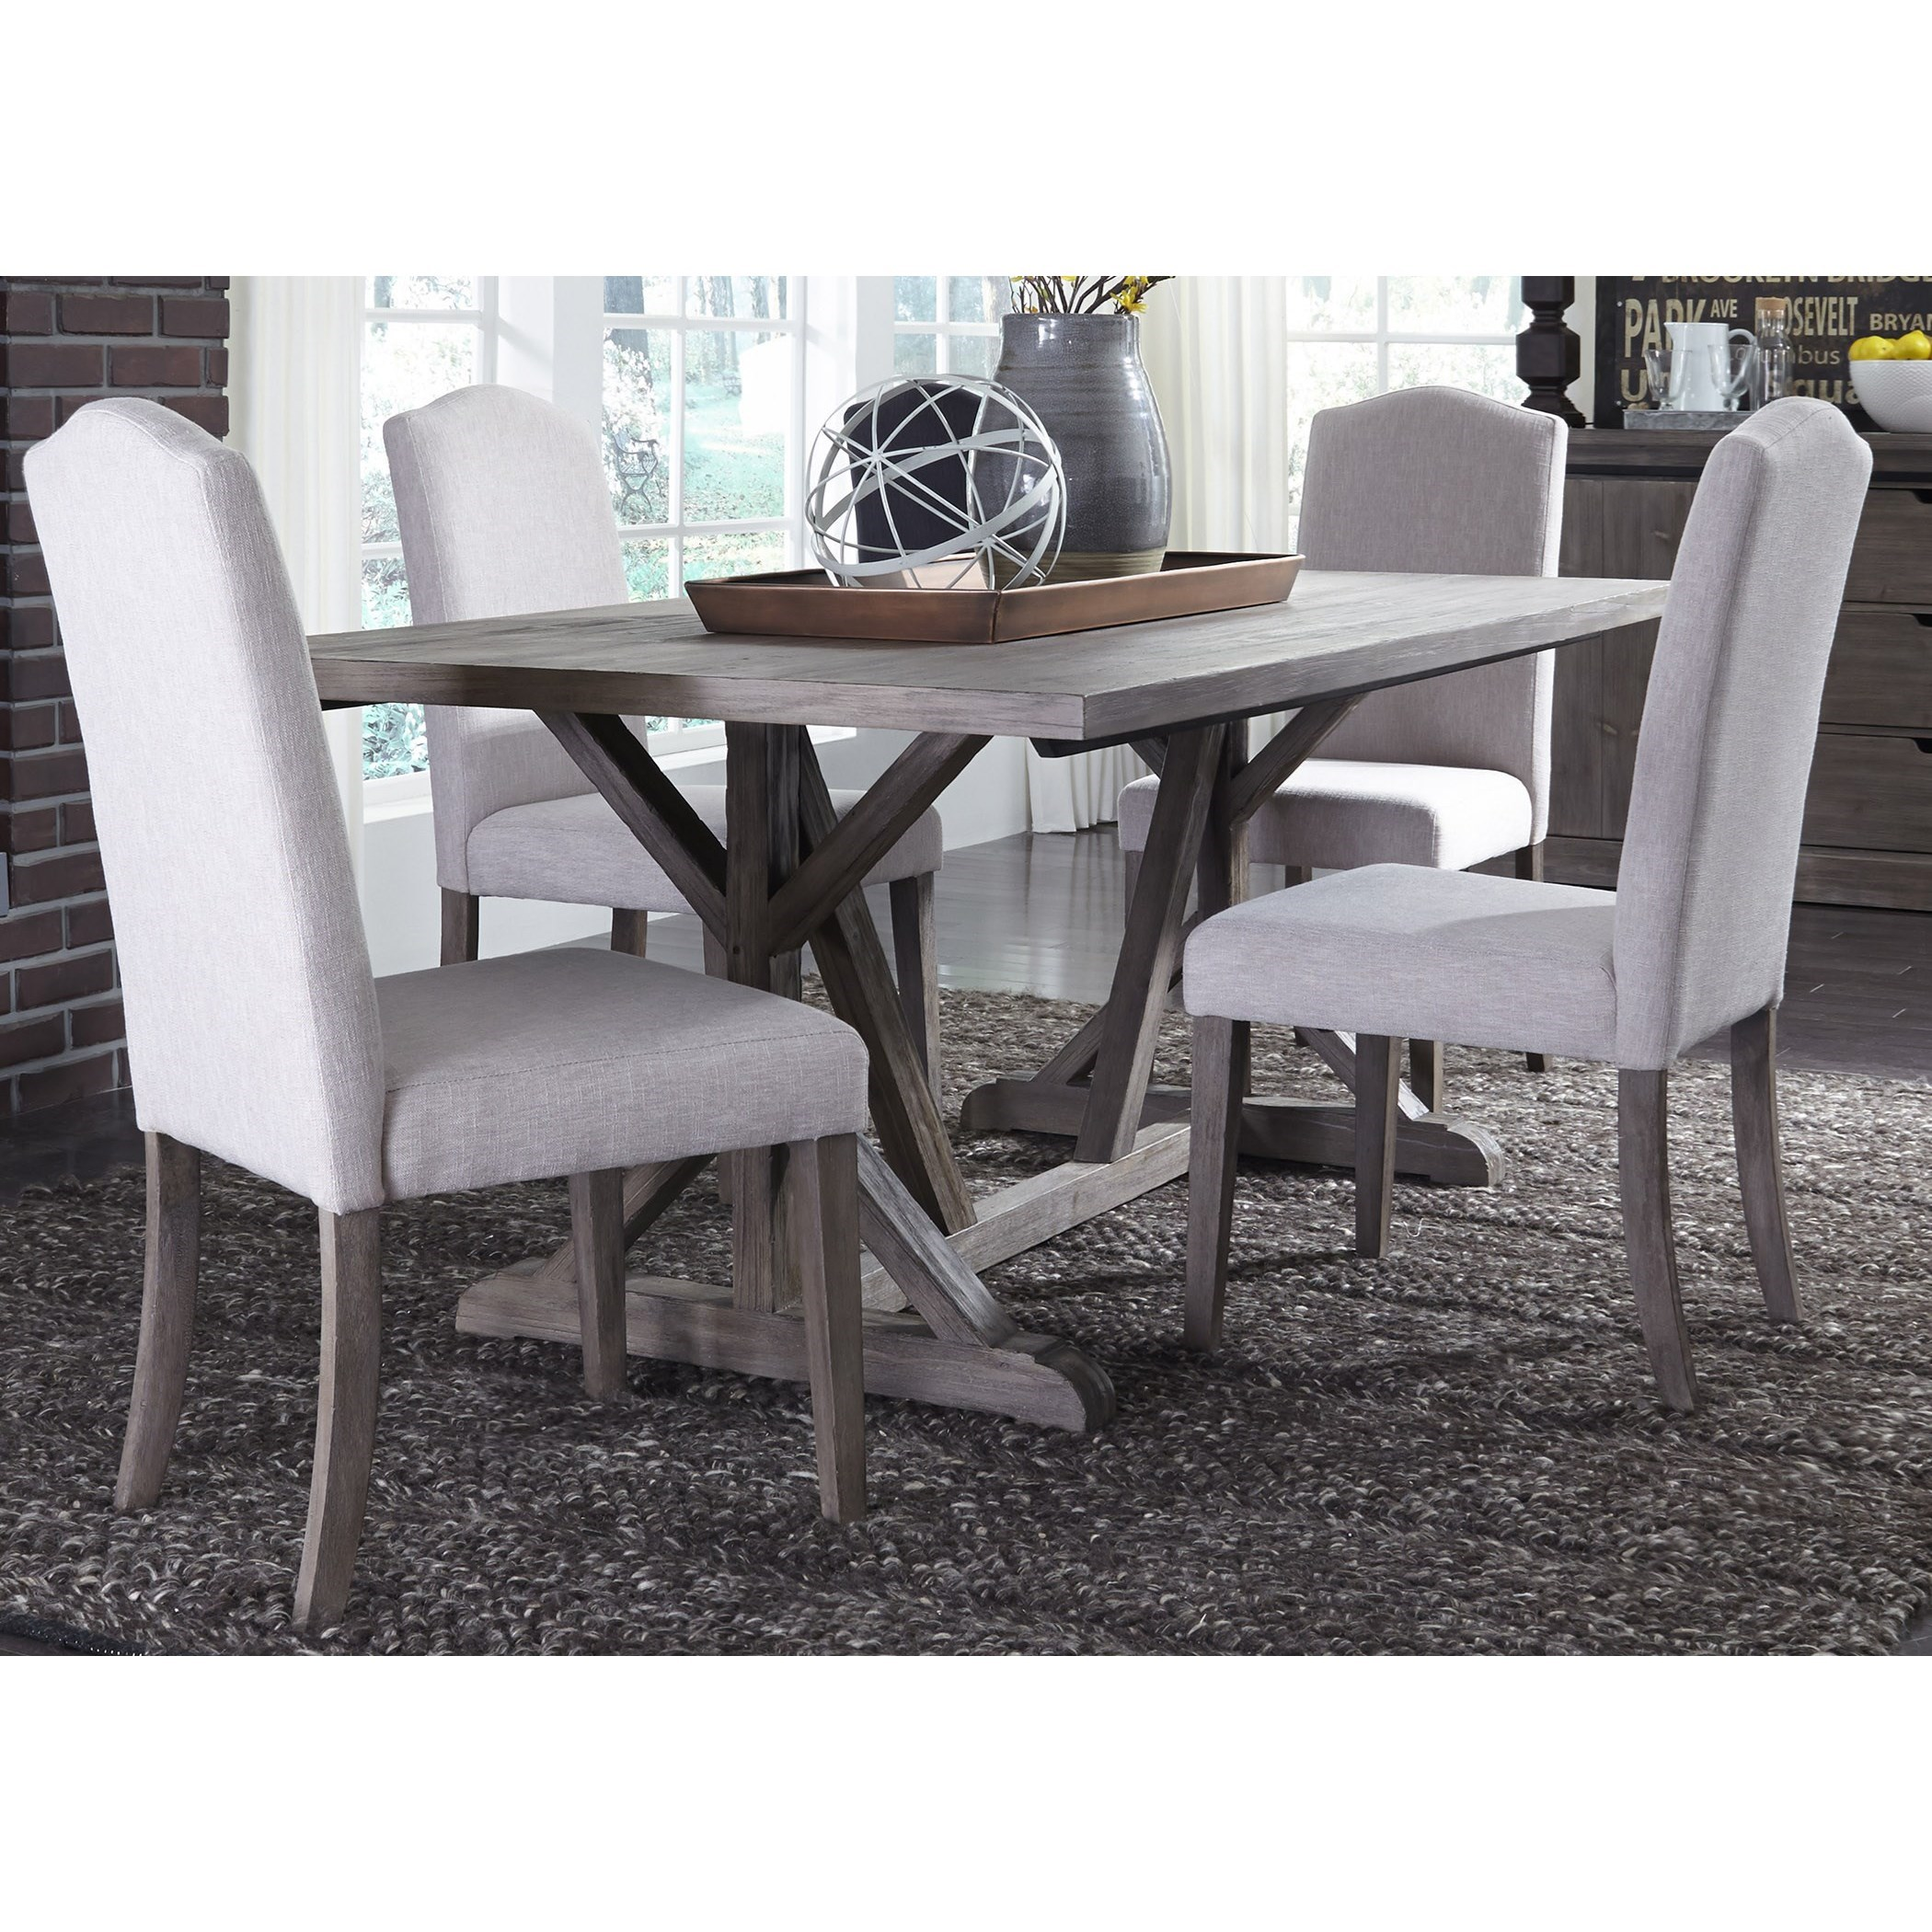 Carolina Lakes 5 Piece Trestle Table Set  by Liberty Furniture at Standard Furniture